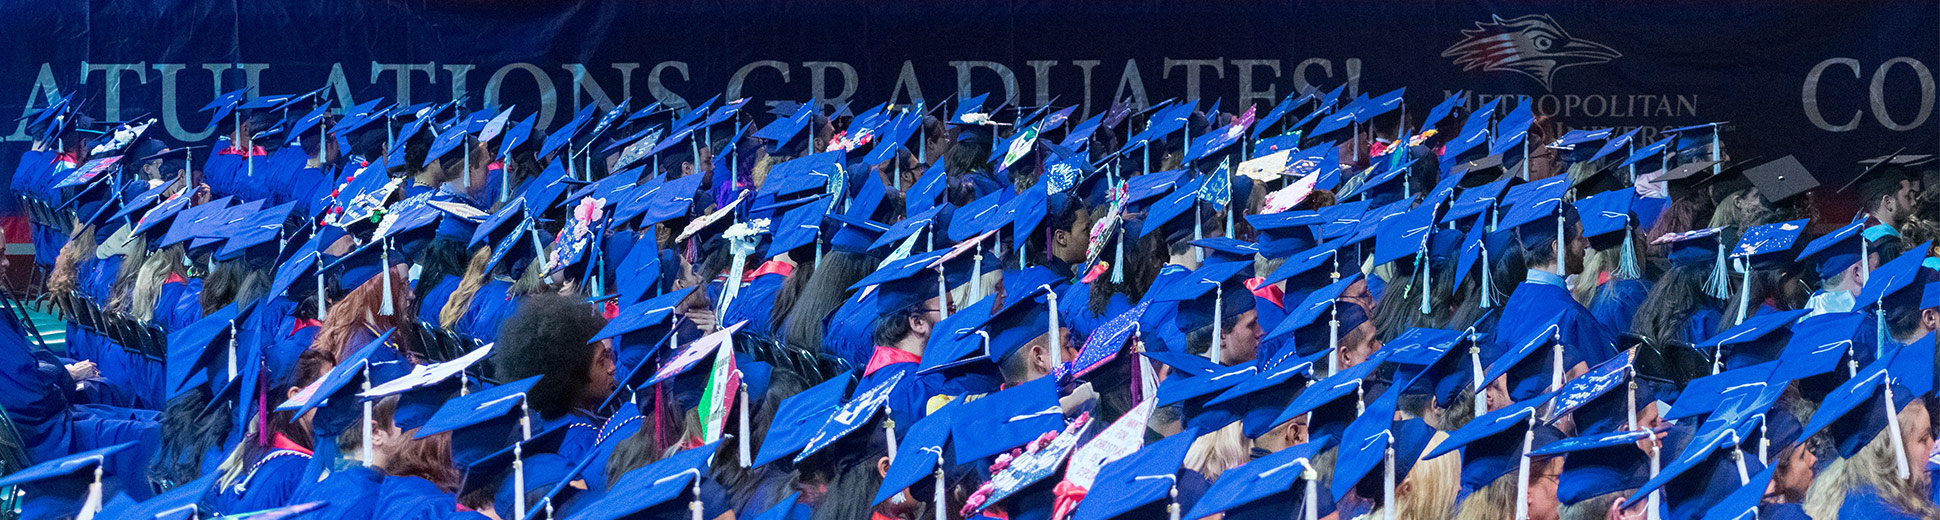 Students in graduation caps at commencement